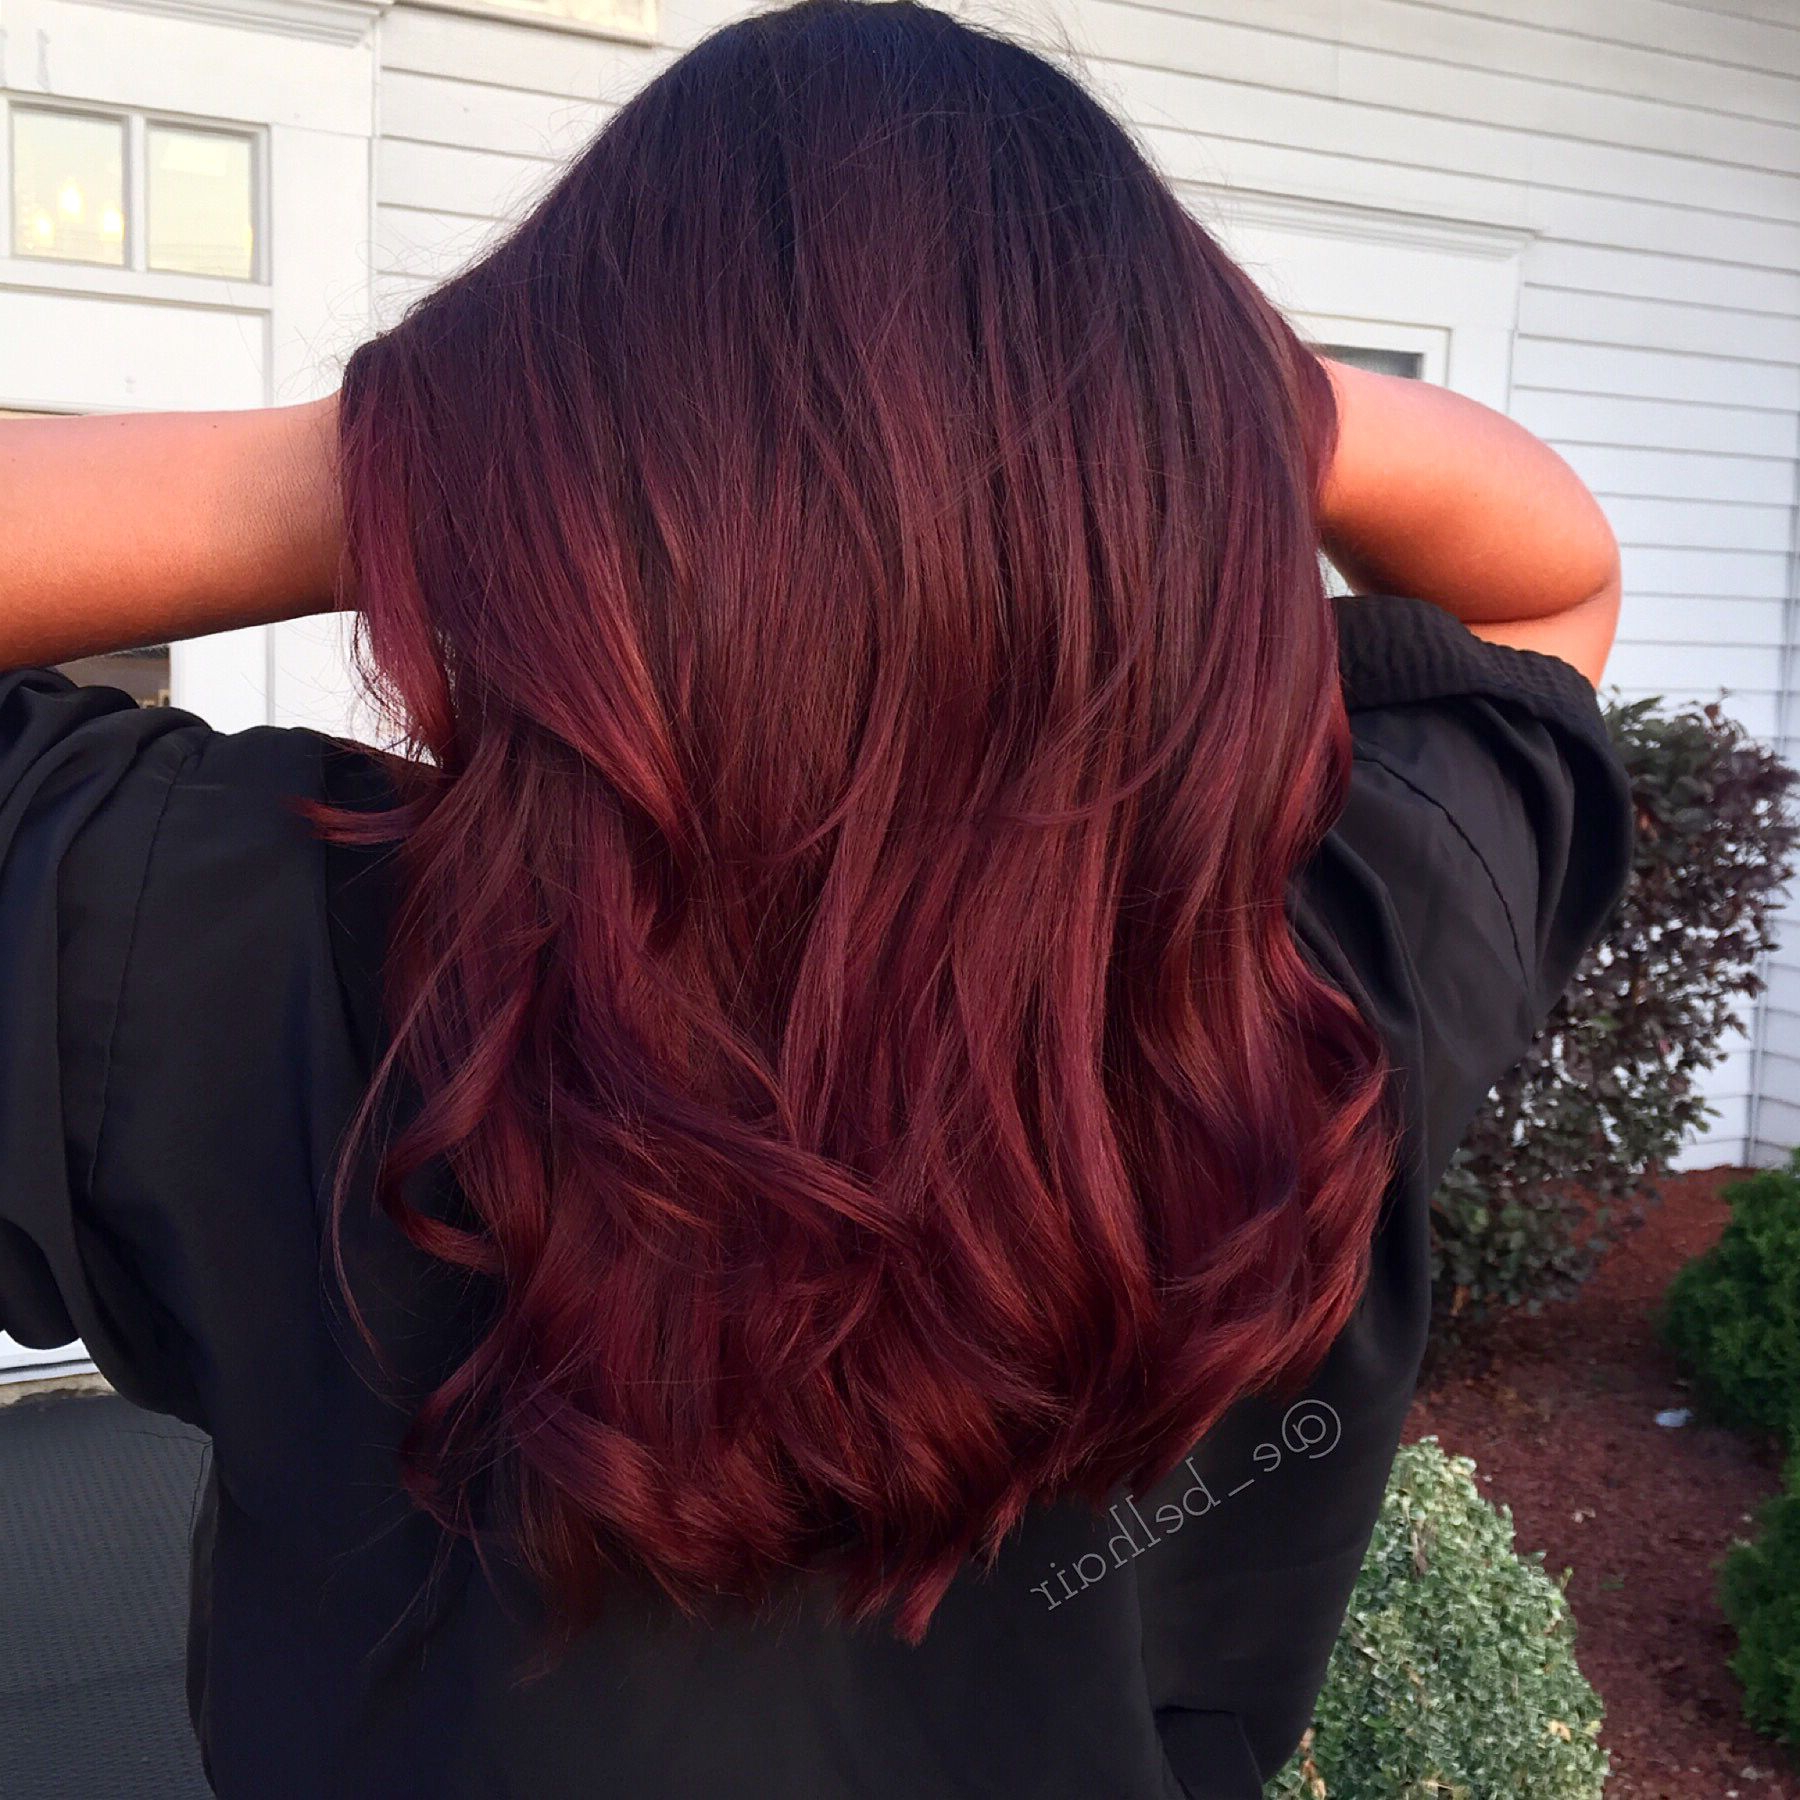 Pin On Hairemily Belcher Intended For Bright Red Balayage On Short Hairstyles (View 15 of 20)